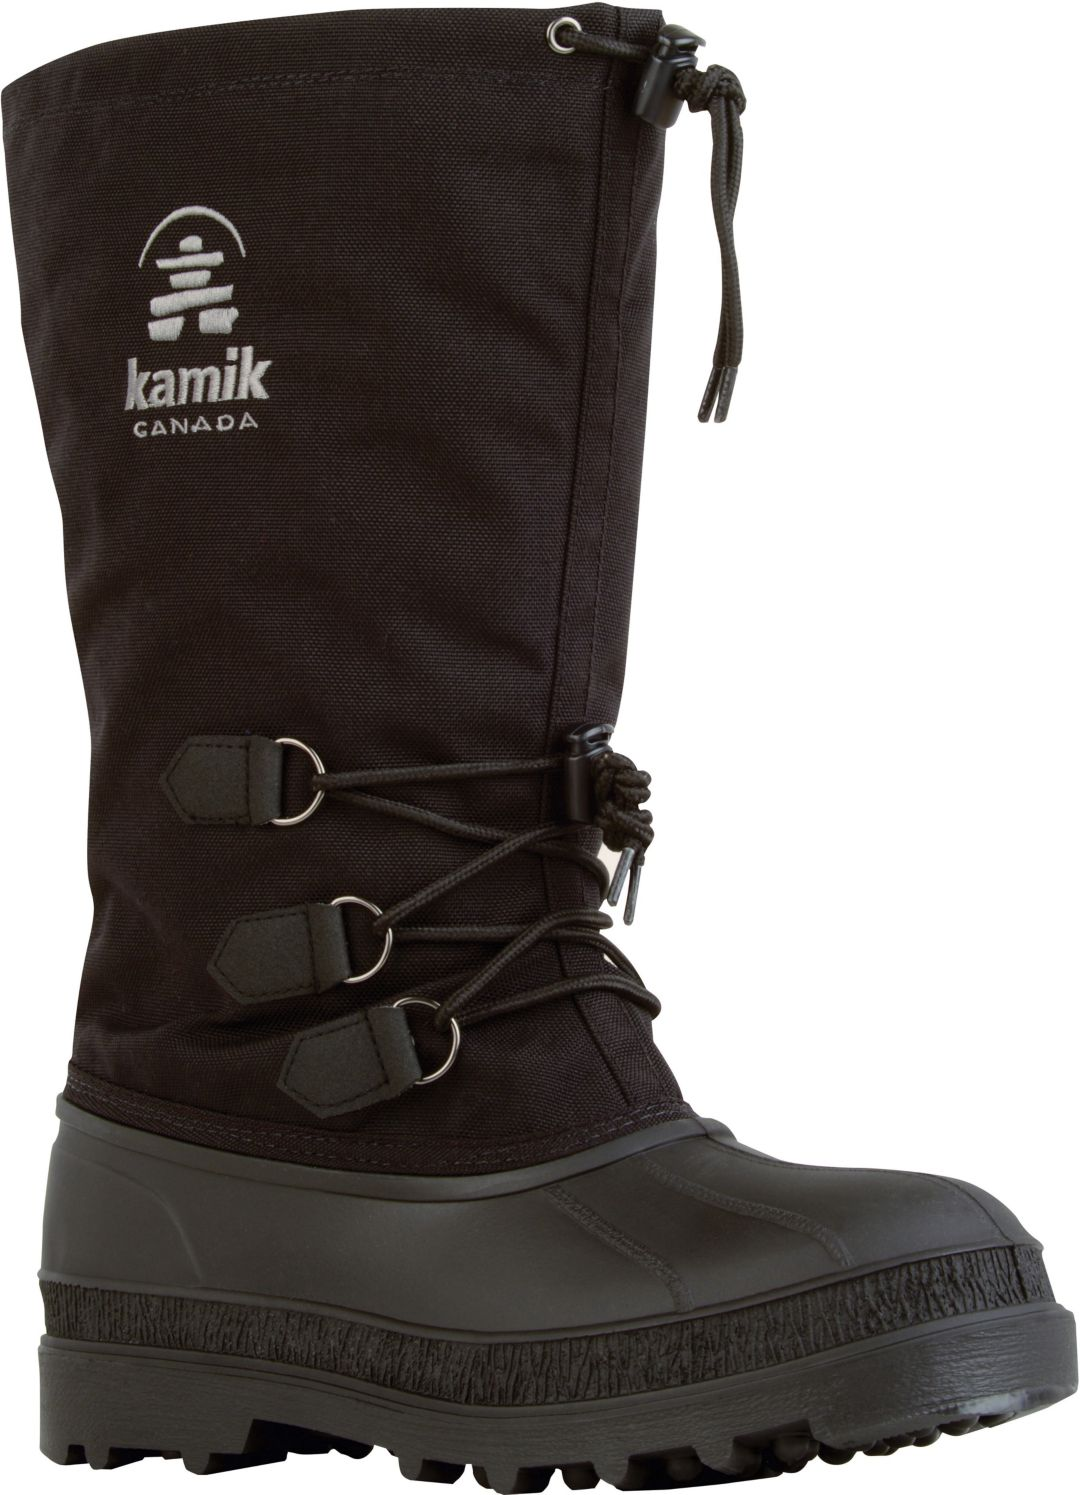 new product full range of specifications 100% original Kamik Men's Canuck Insulated Waterproof Winter Boots